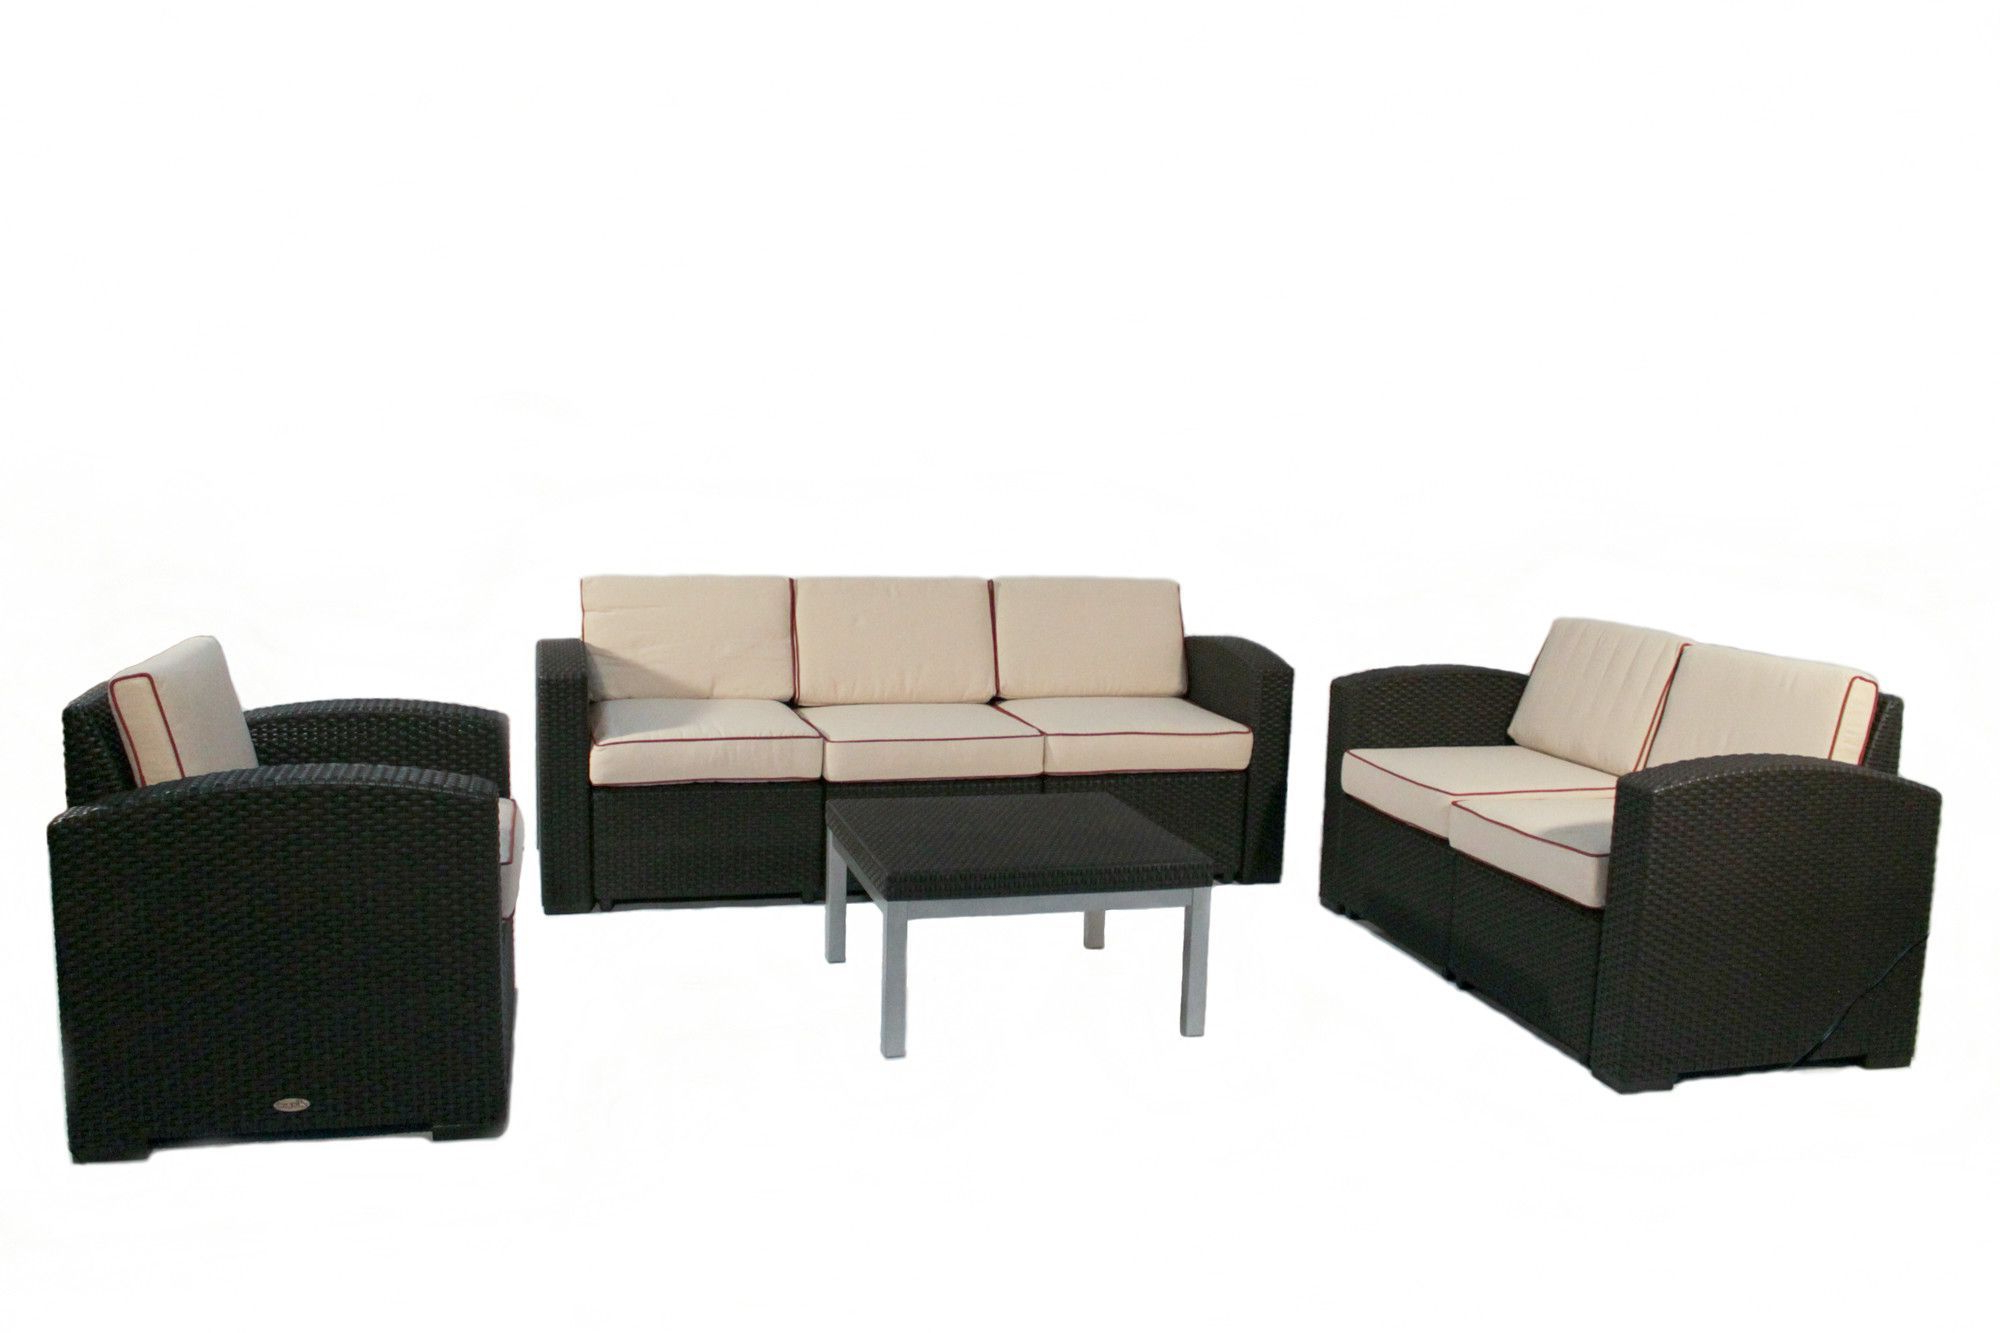 Cielo 4 Piece Seating Group With Cushion (View 17 of 20)